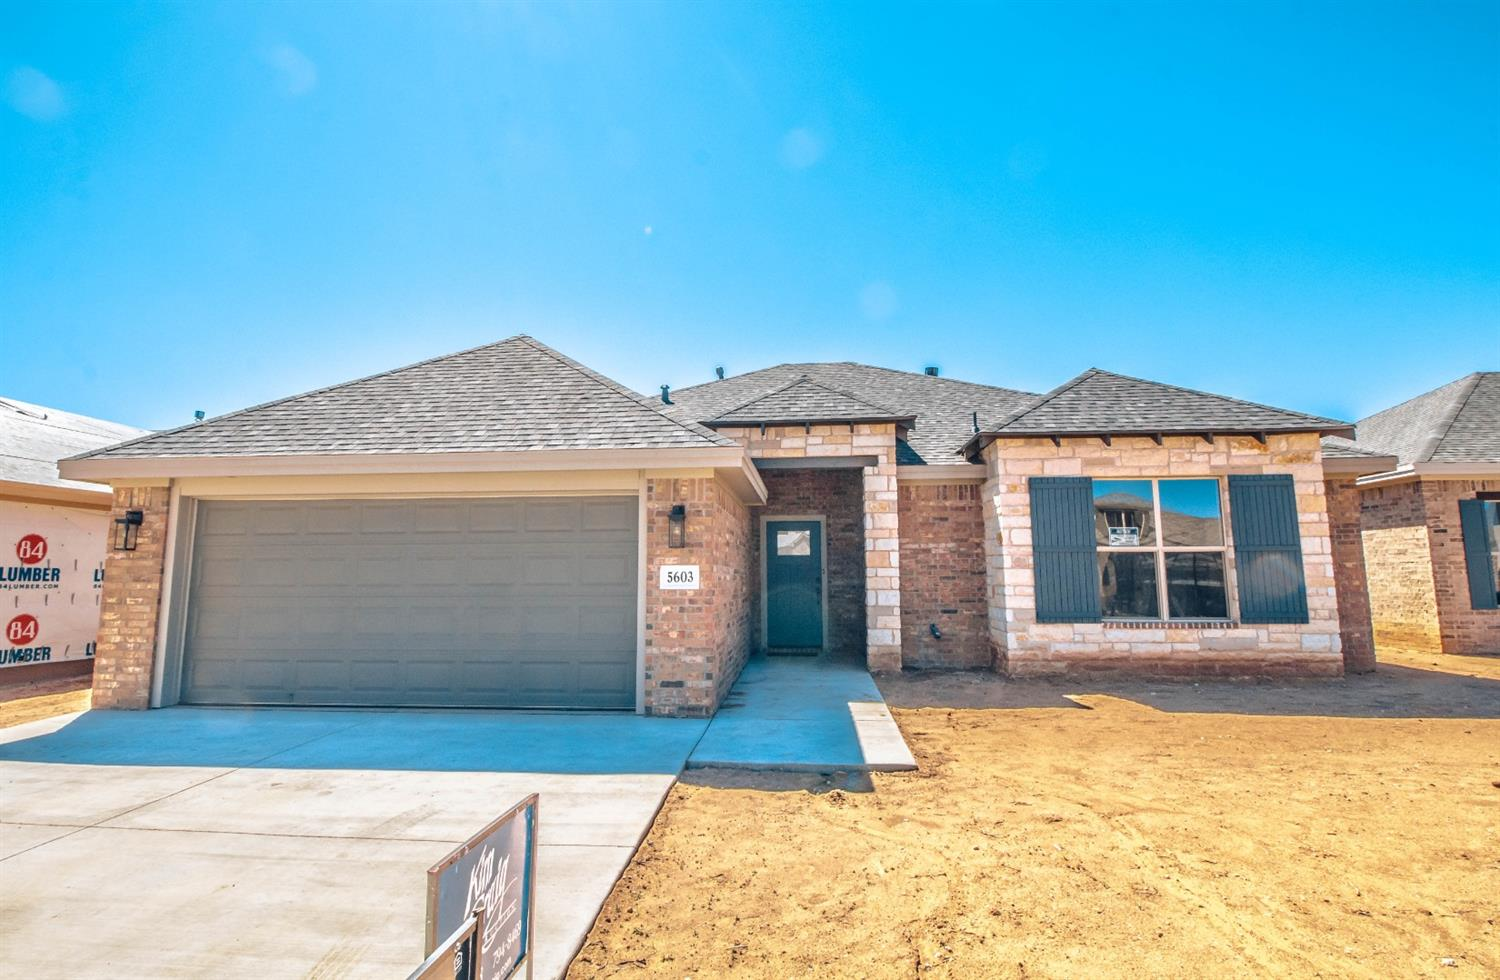 Check out this AMAZING Kim Craig Home. This 3/2/2 with isolated master bedroom is perfect. The home will be ready at the beginning of February. Stonewood is a front entry garage that is up and coming. You dont want to miss this home.